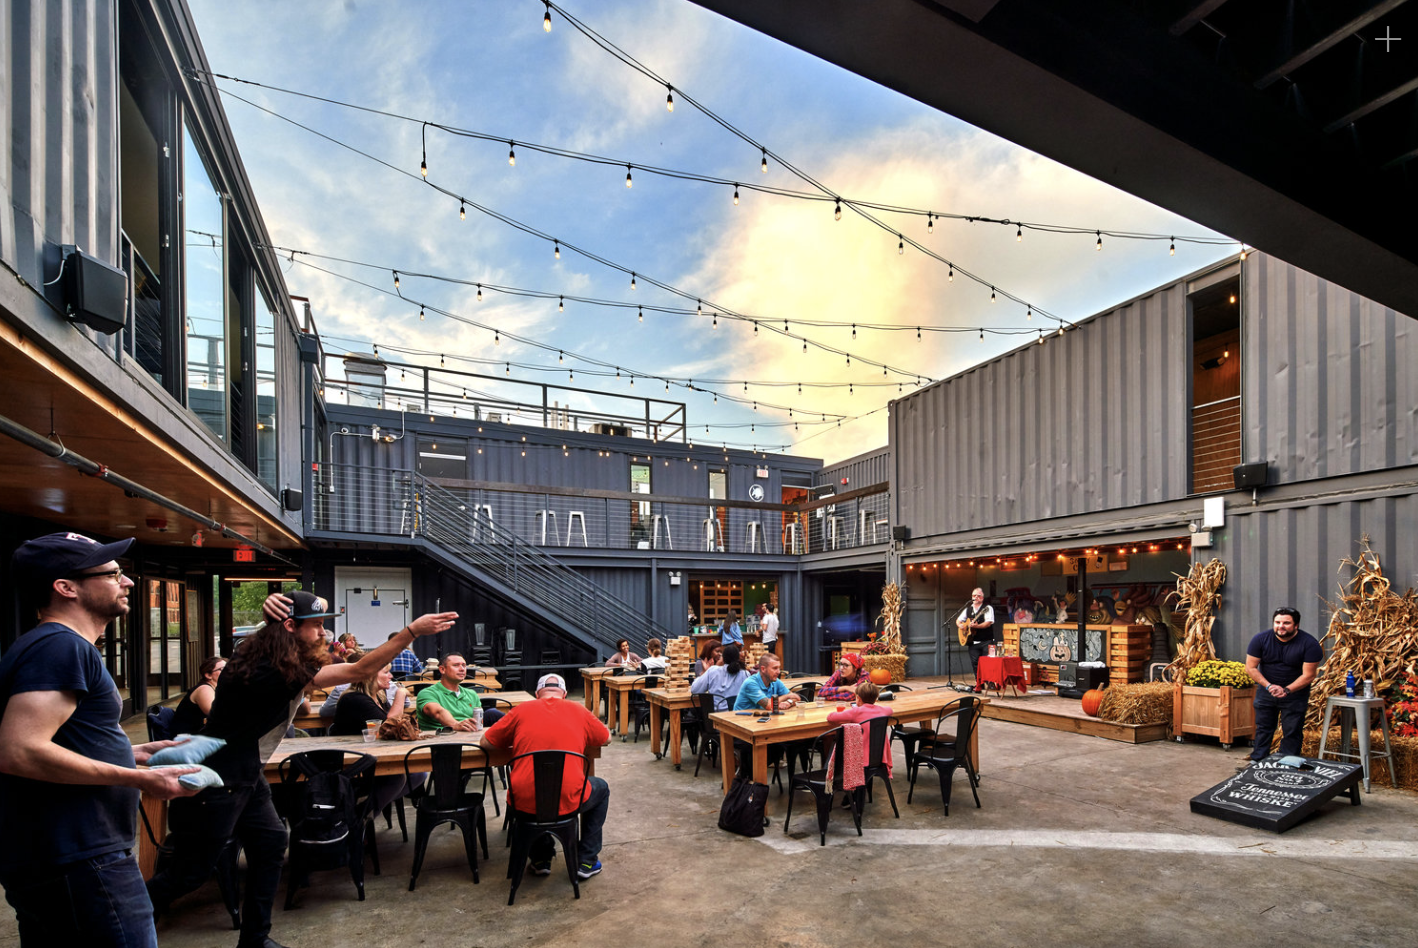 PRIVATE PARTIES — Restaurant Collective & Beer Hall